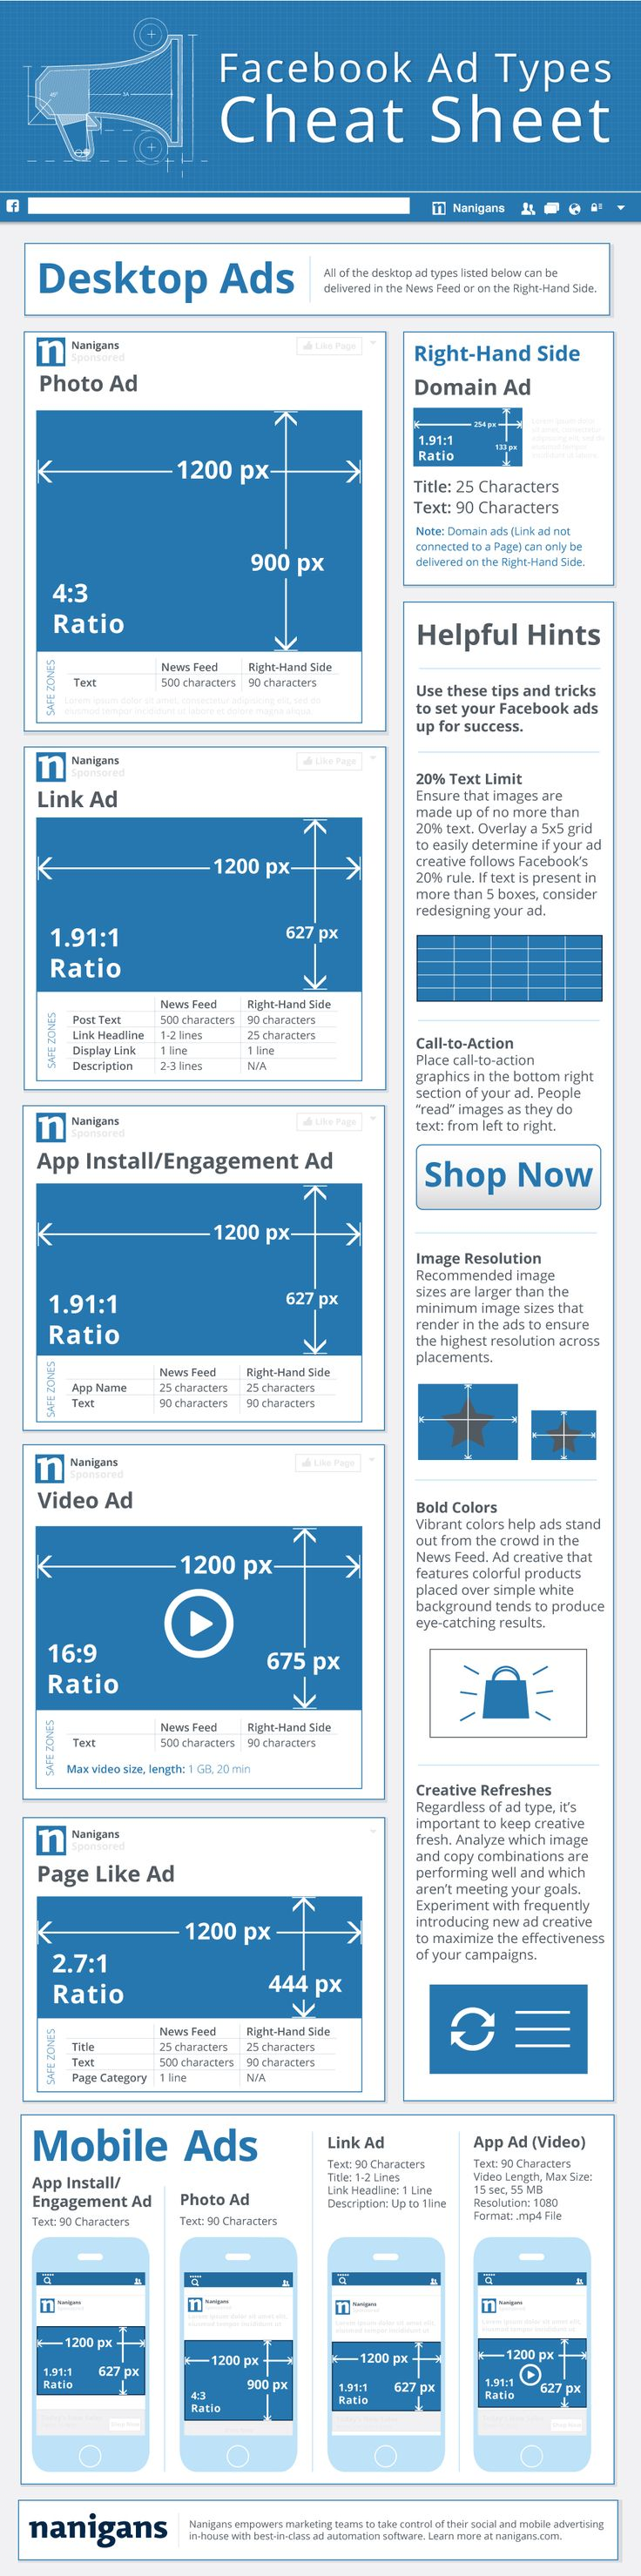 #Infographic: Facebook ad types cheat sheet - Inside Facebook: En Facebook,  Internet Site,  Website, Ads Types, Social Media, Web Site, Cheat Sheet, Types Cheat, Facebook Ads